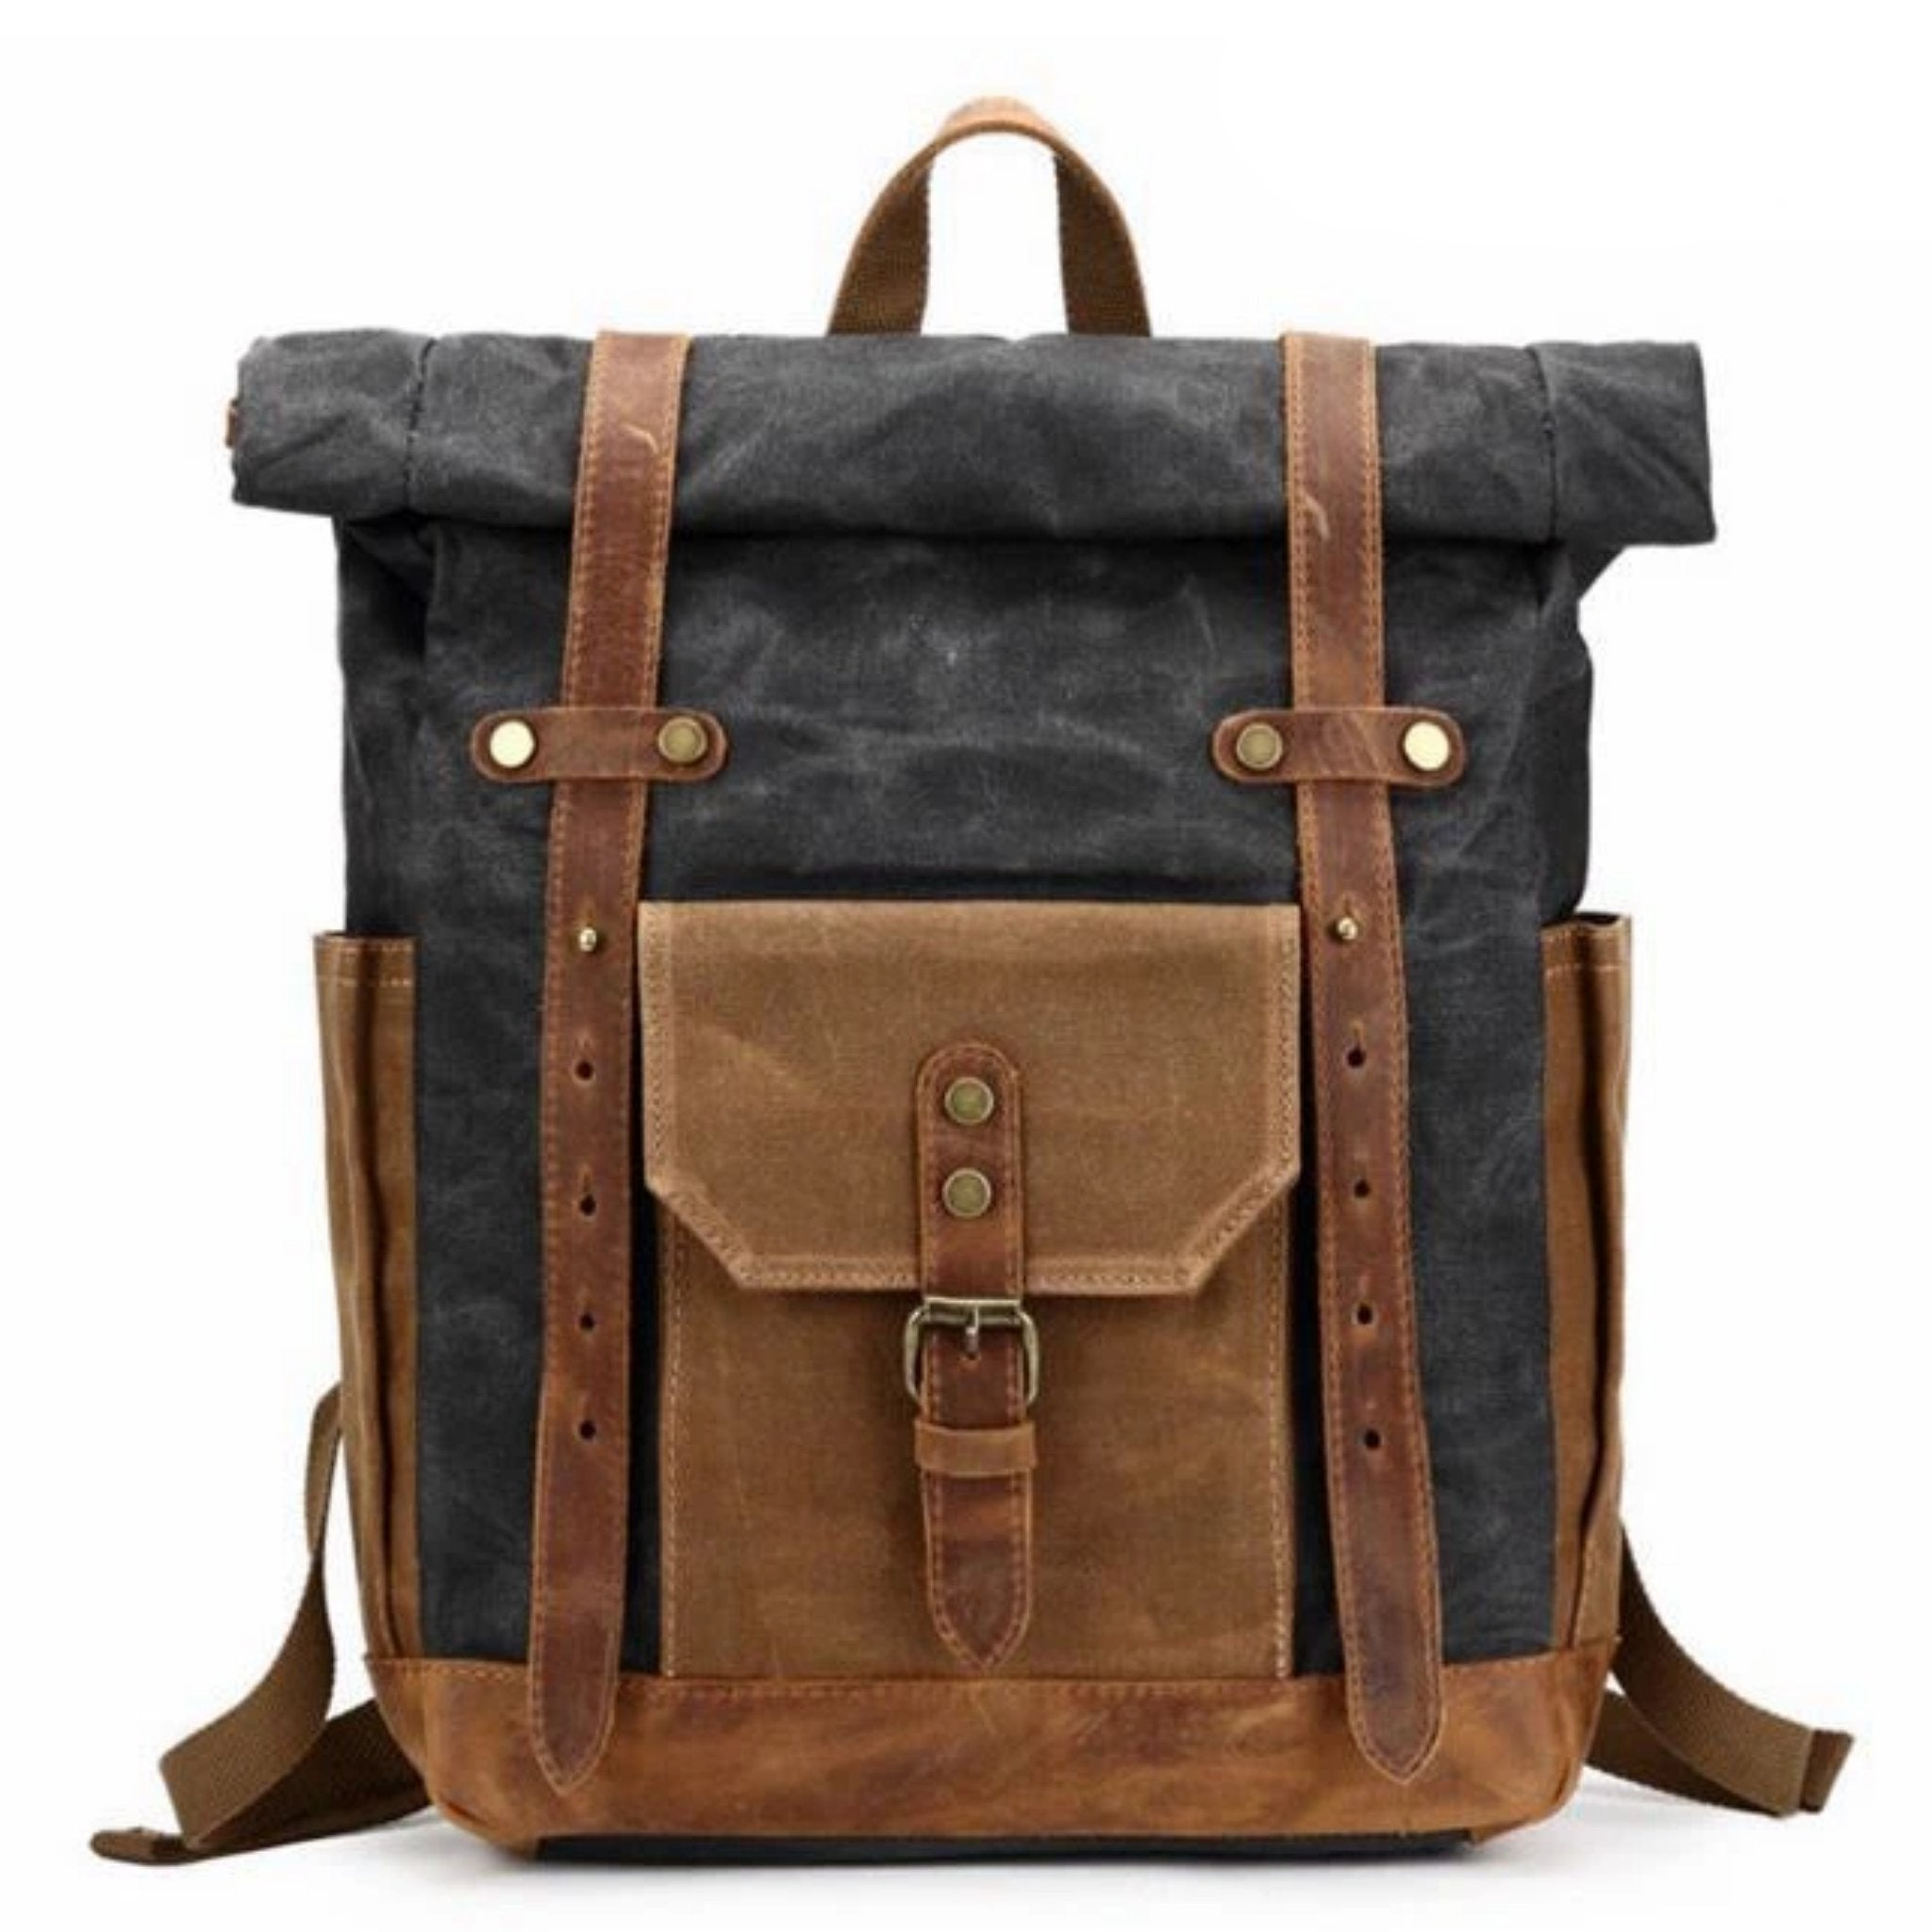 Waxed Canvas with Leather Trim Expandable Backpack - Blue Sebe Handmade Leather Bags